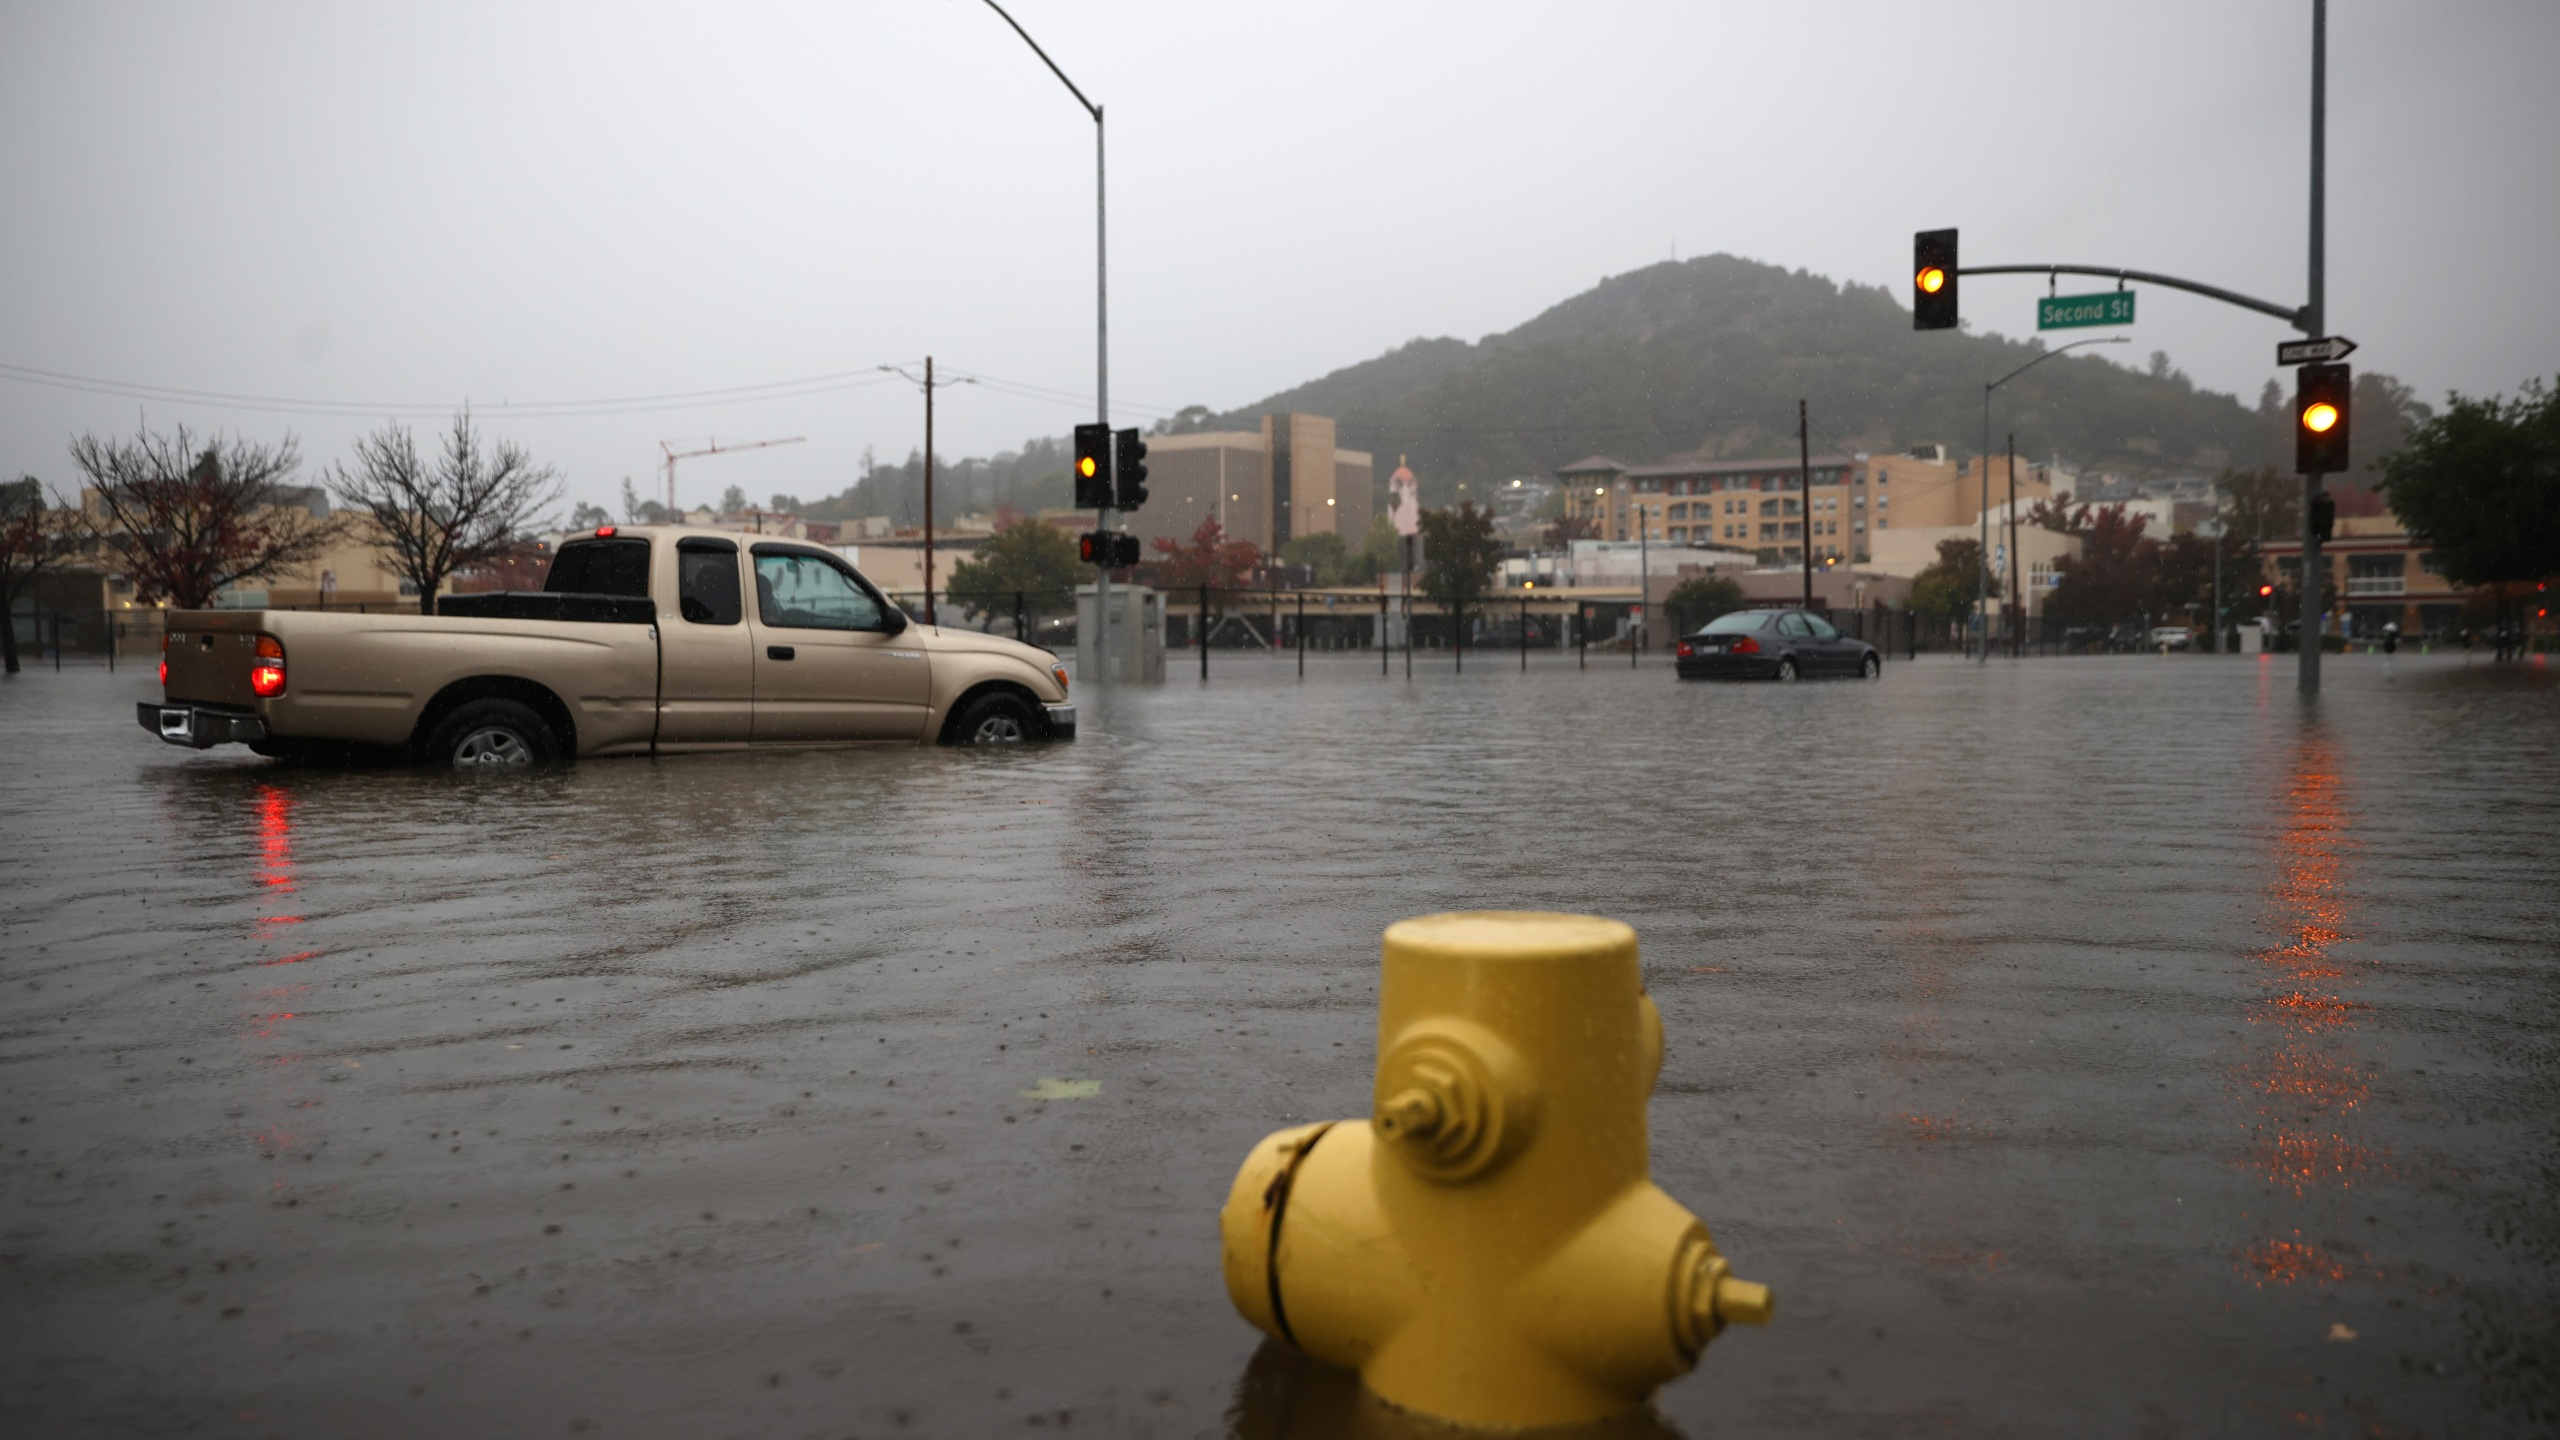 Cars try to navigate a flooded street on Oct. 24, 2021 in San Rafael. (Justin Sullivan/Getty Images)